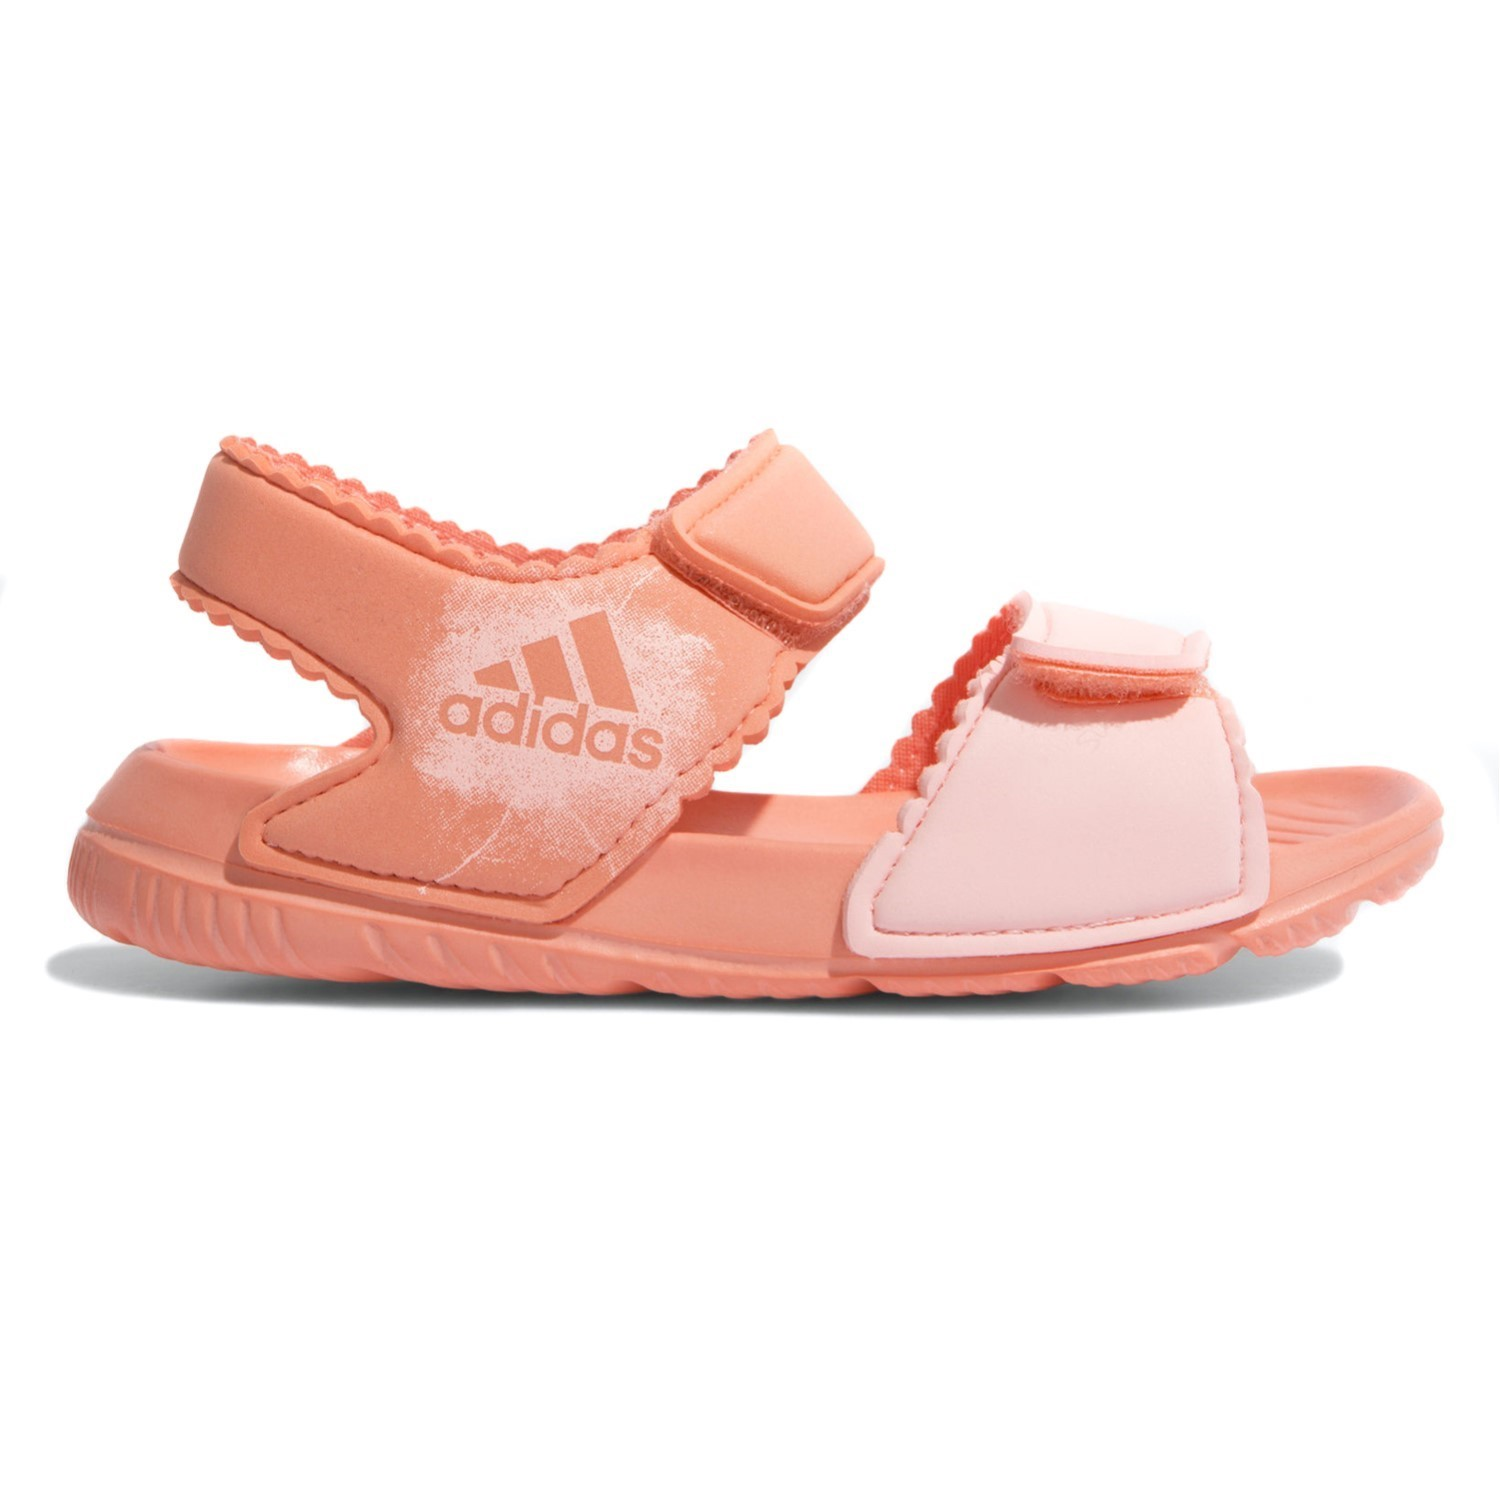 e78e07cff4881 Adidas AltaSwim - Toddler Girls Sandals - Coral Orange